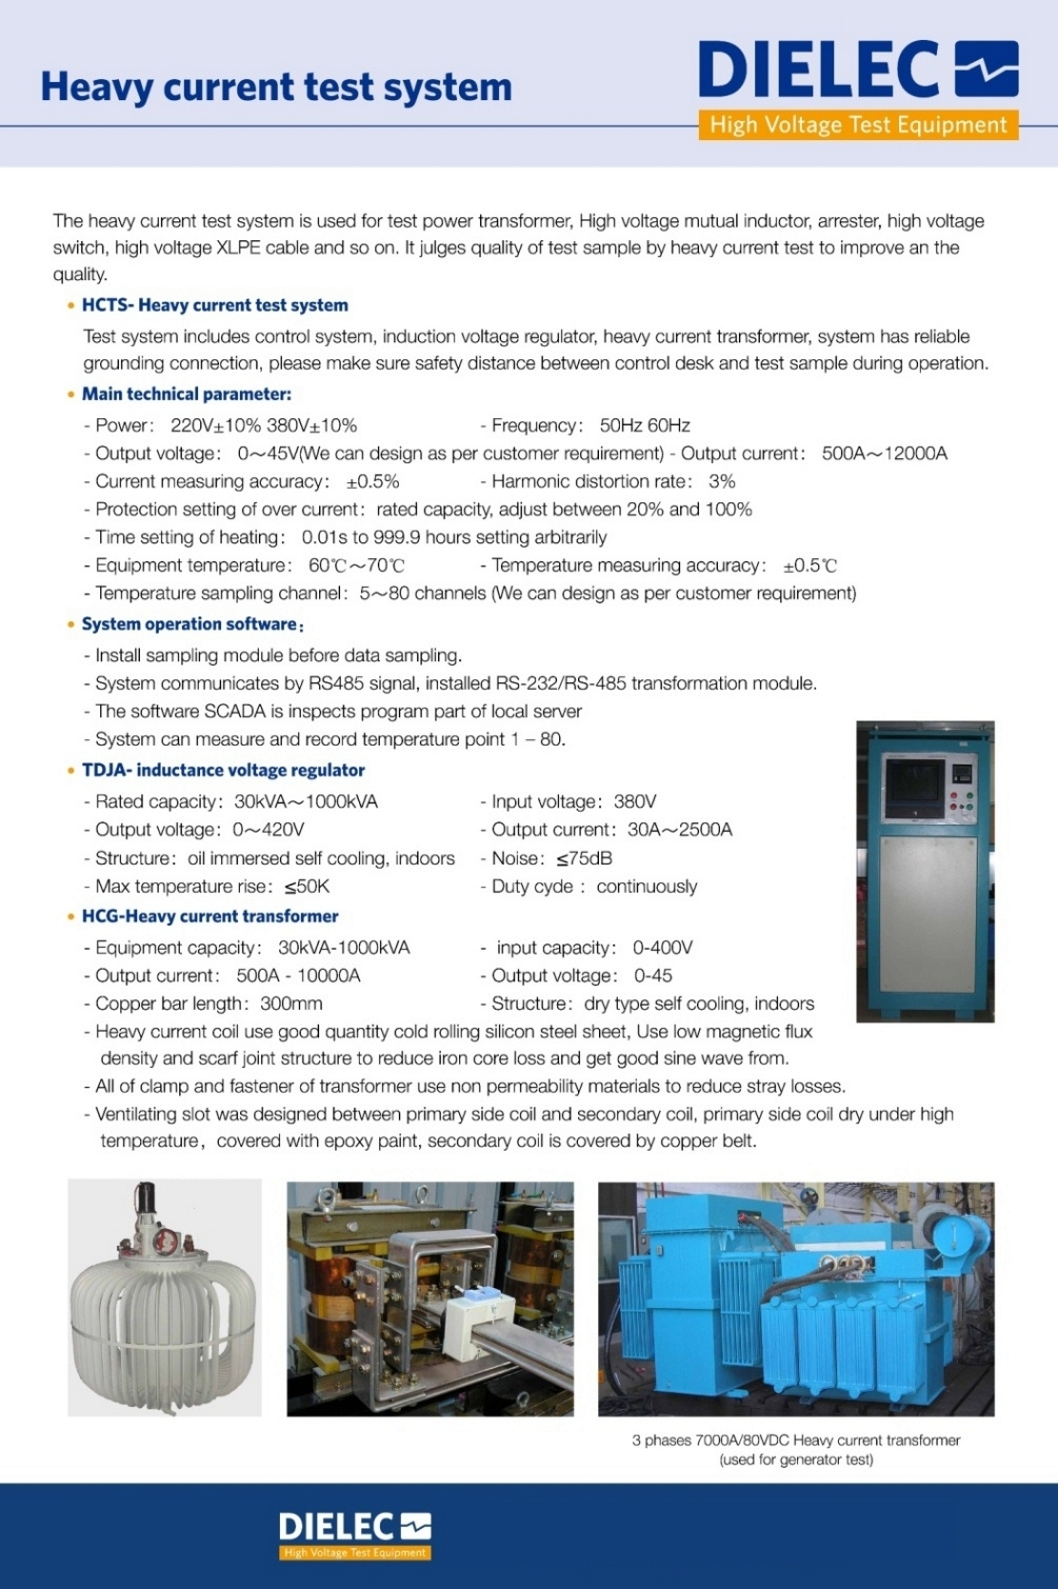 Dielec - Brochure - Heavy Current Test System